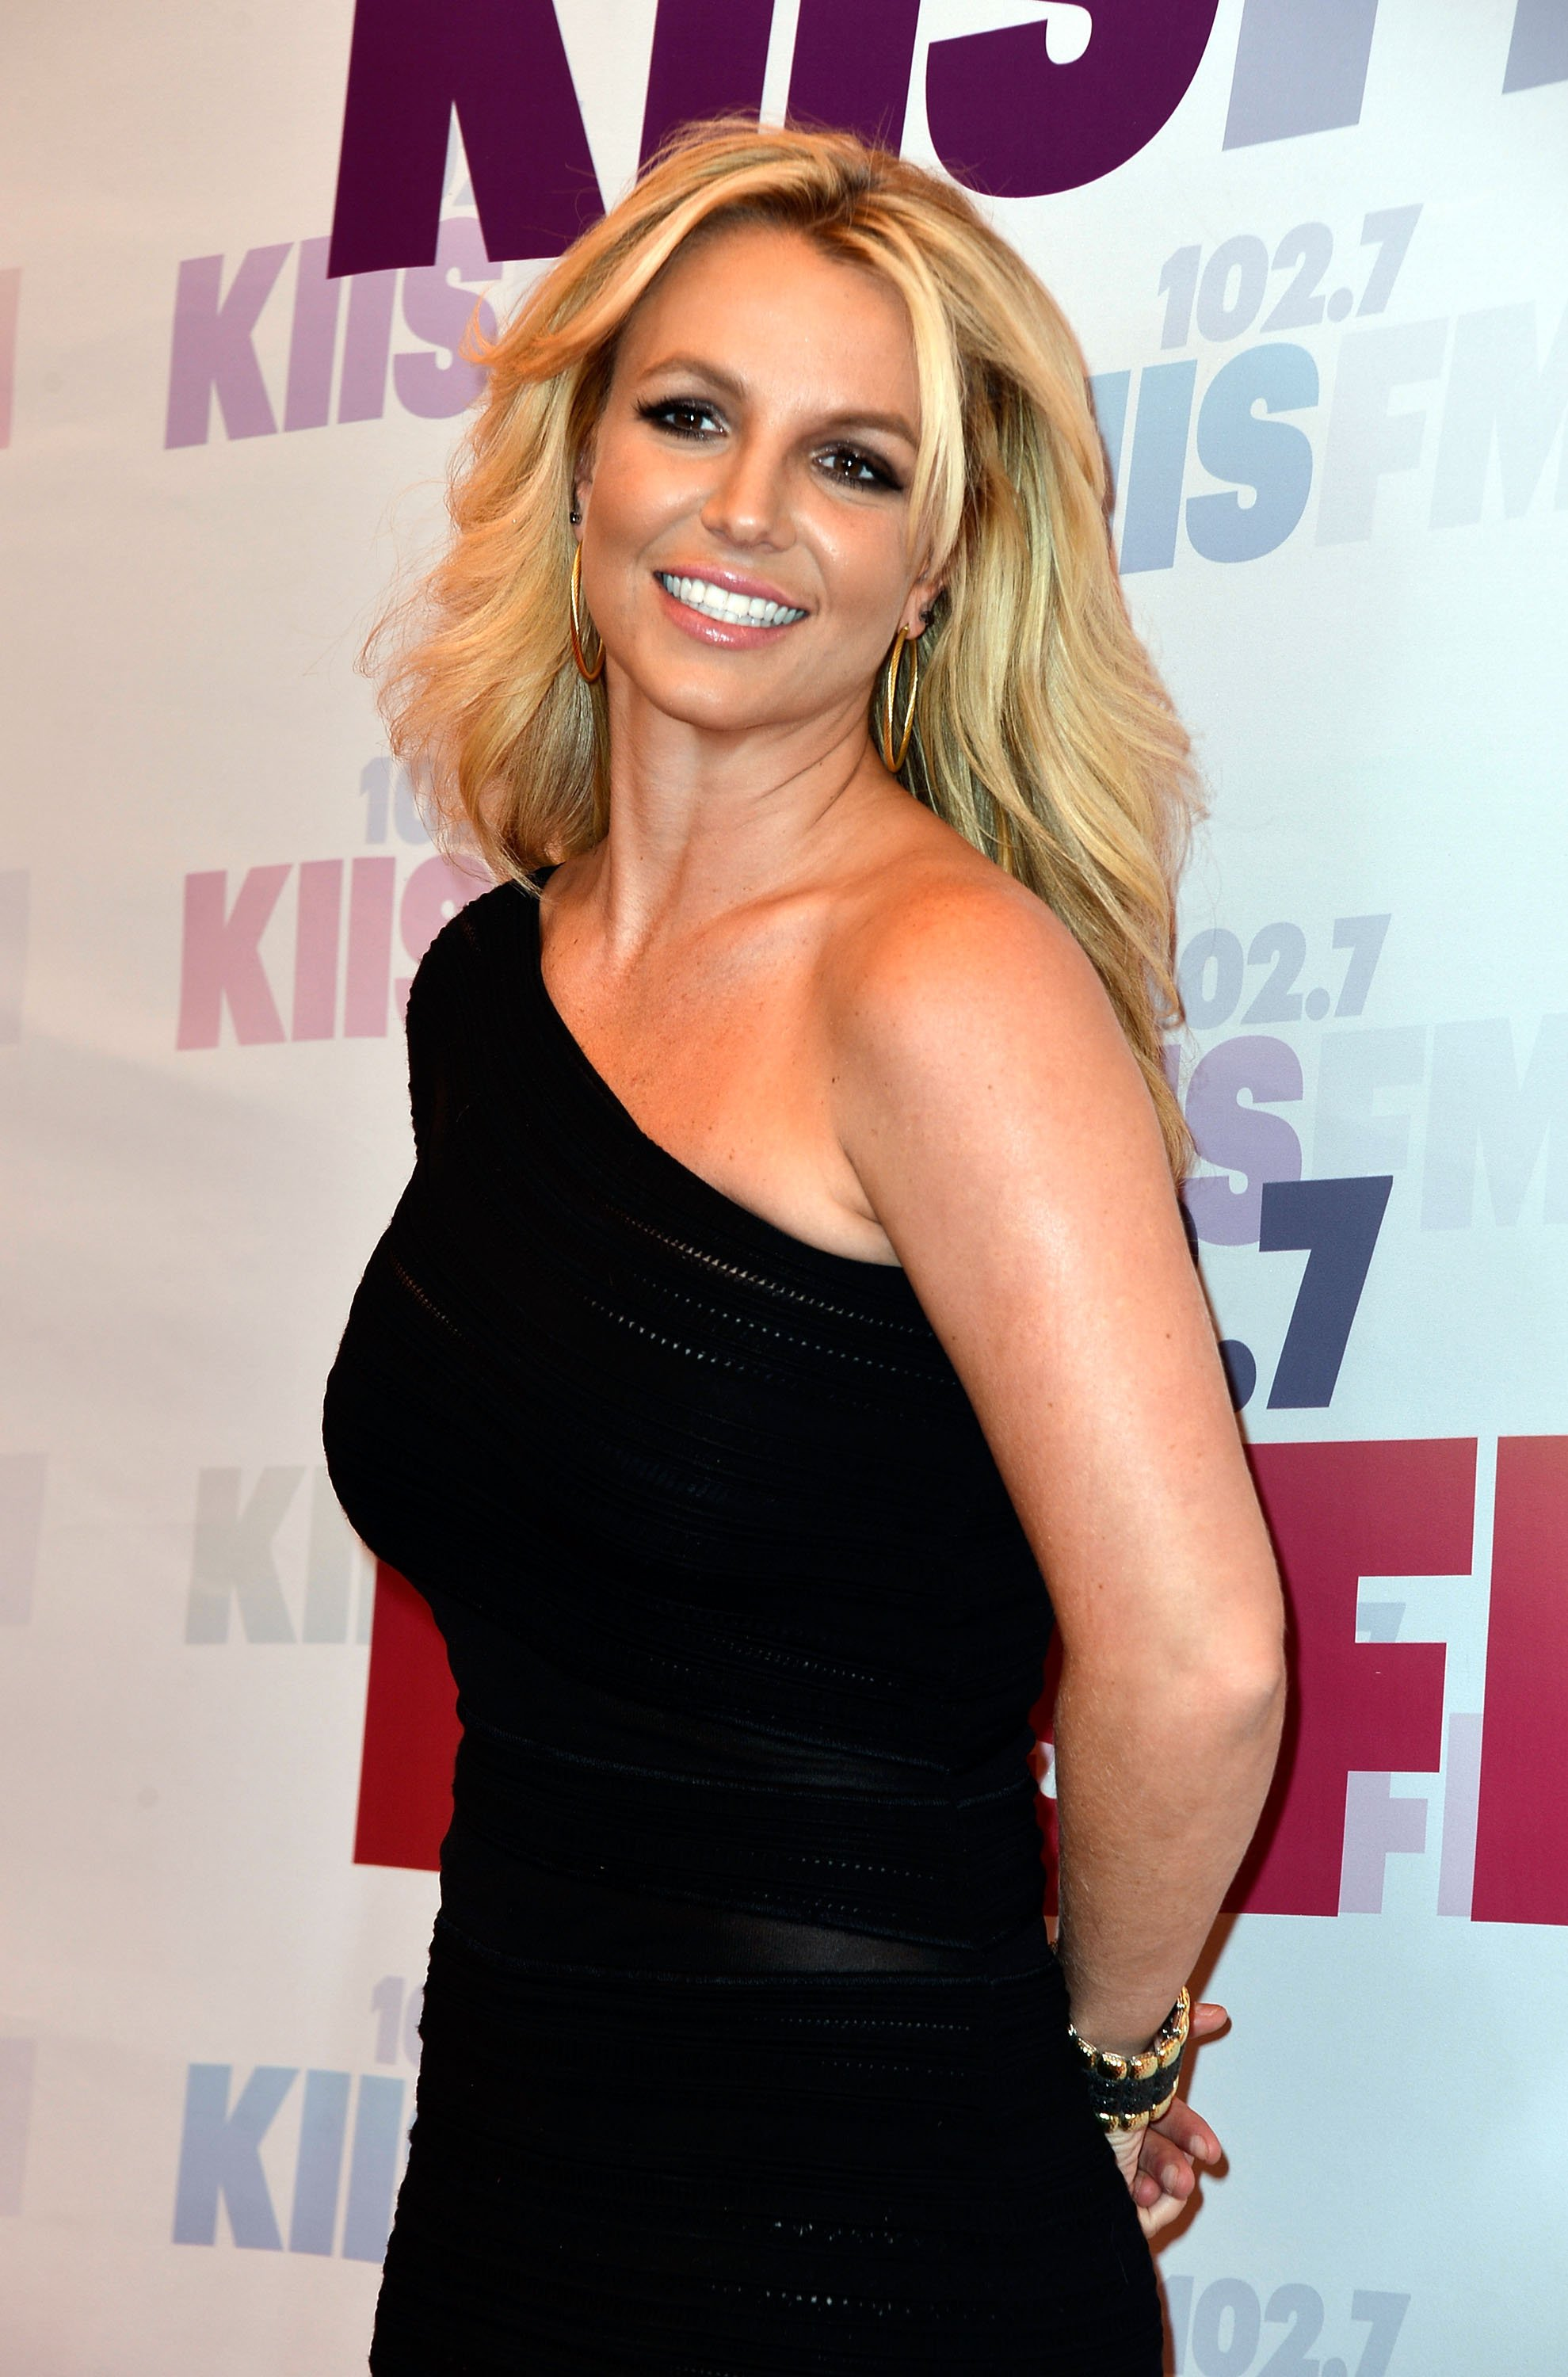 Britney Spears attends 102.7 KIIS FM's Wango Tango on May 11, 2013 | Photo: Getty Images.